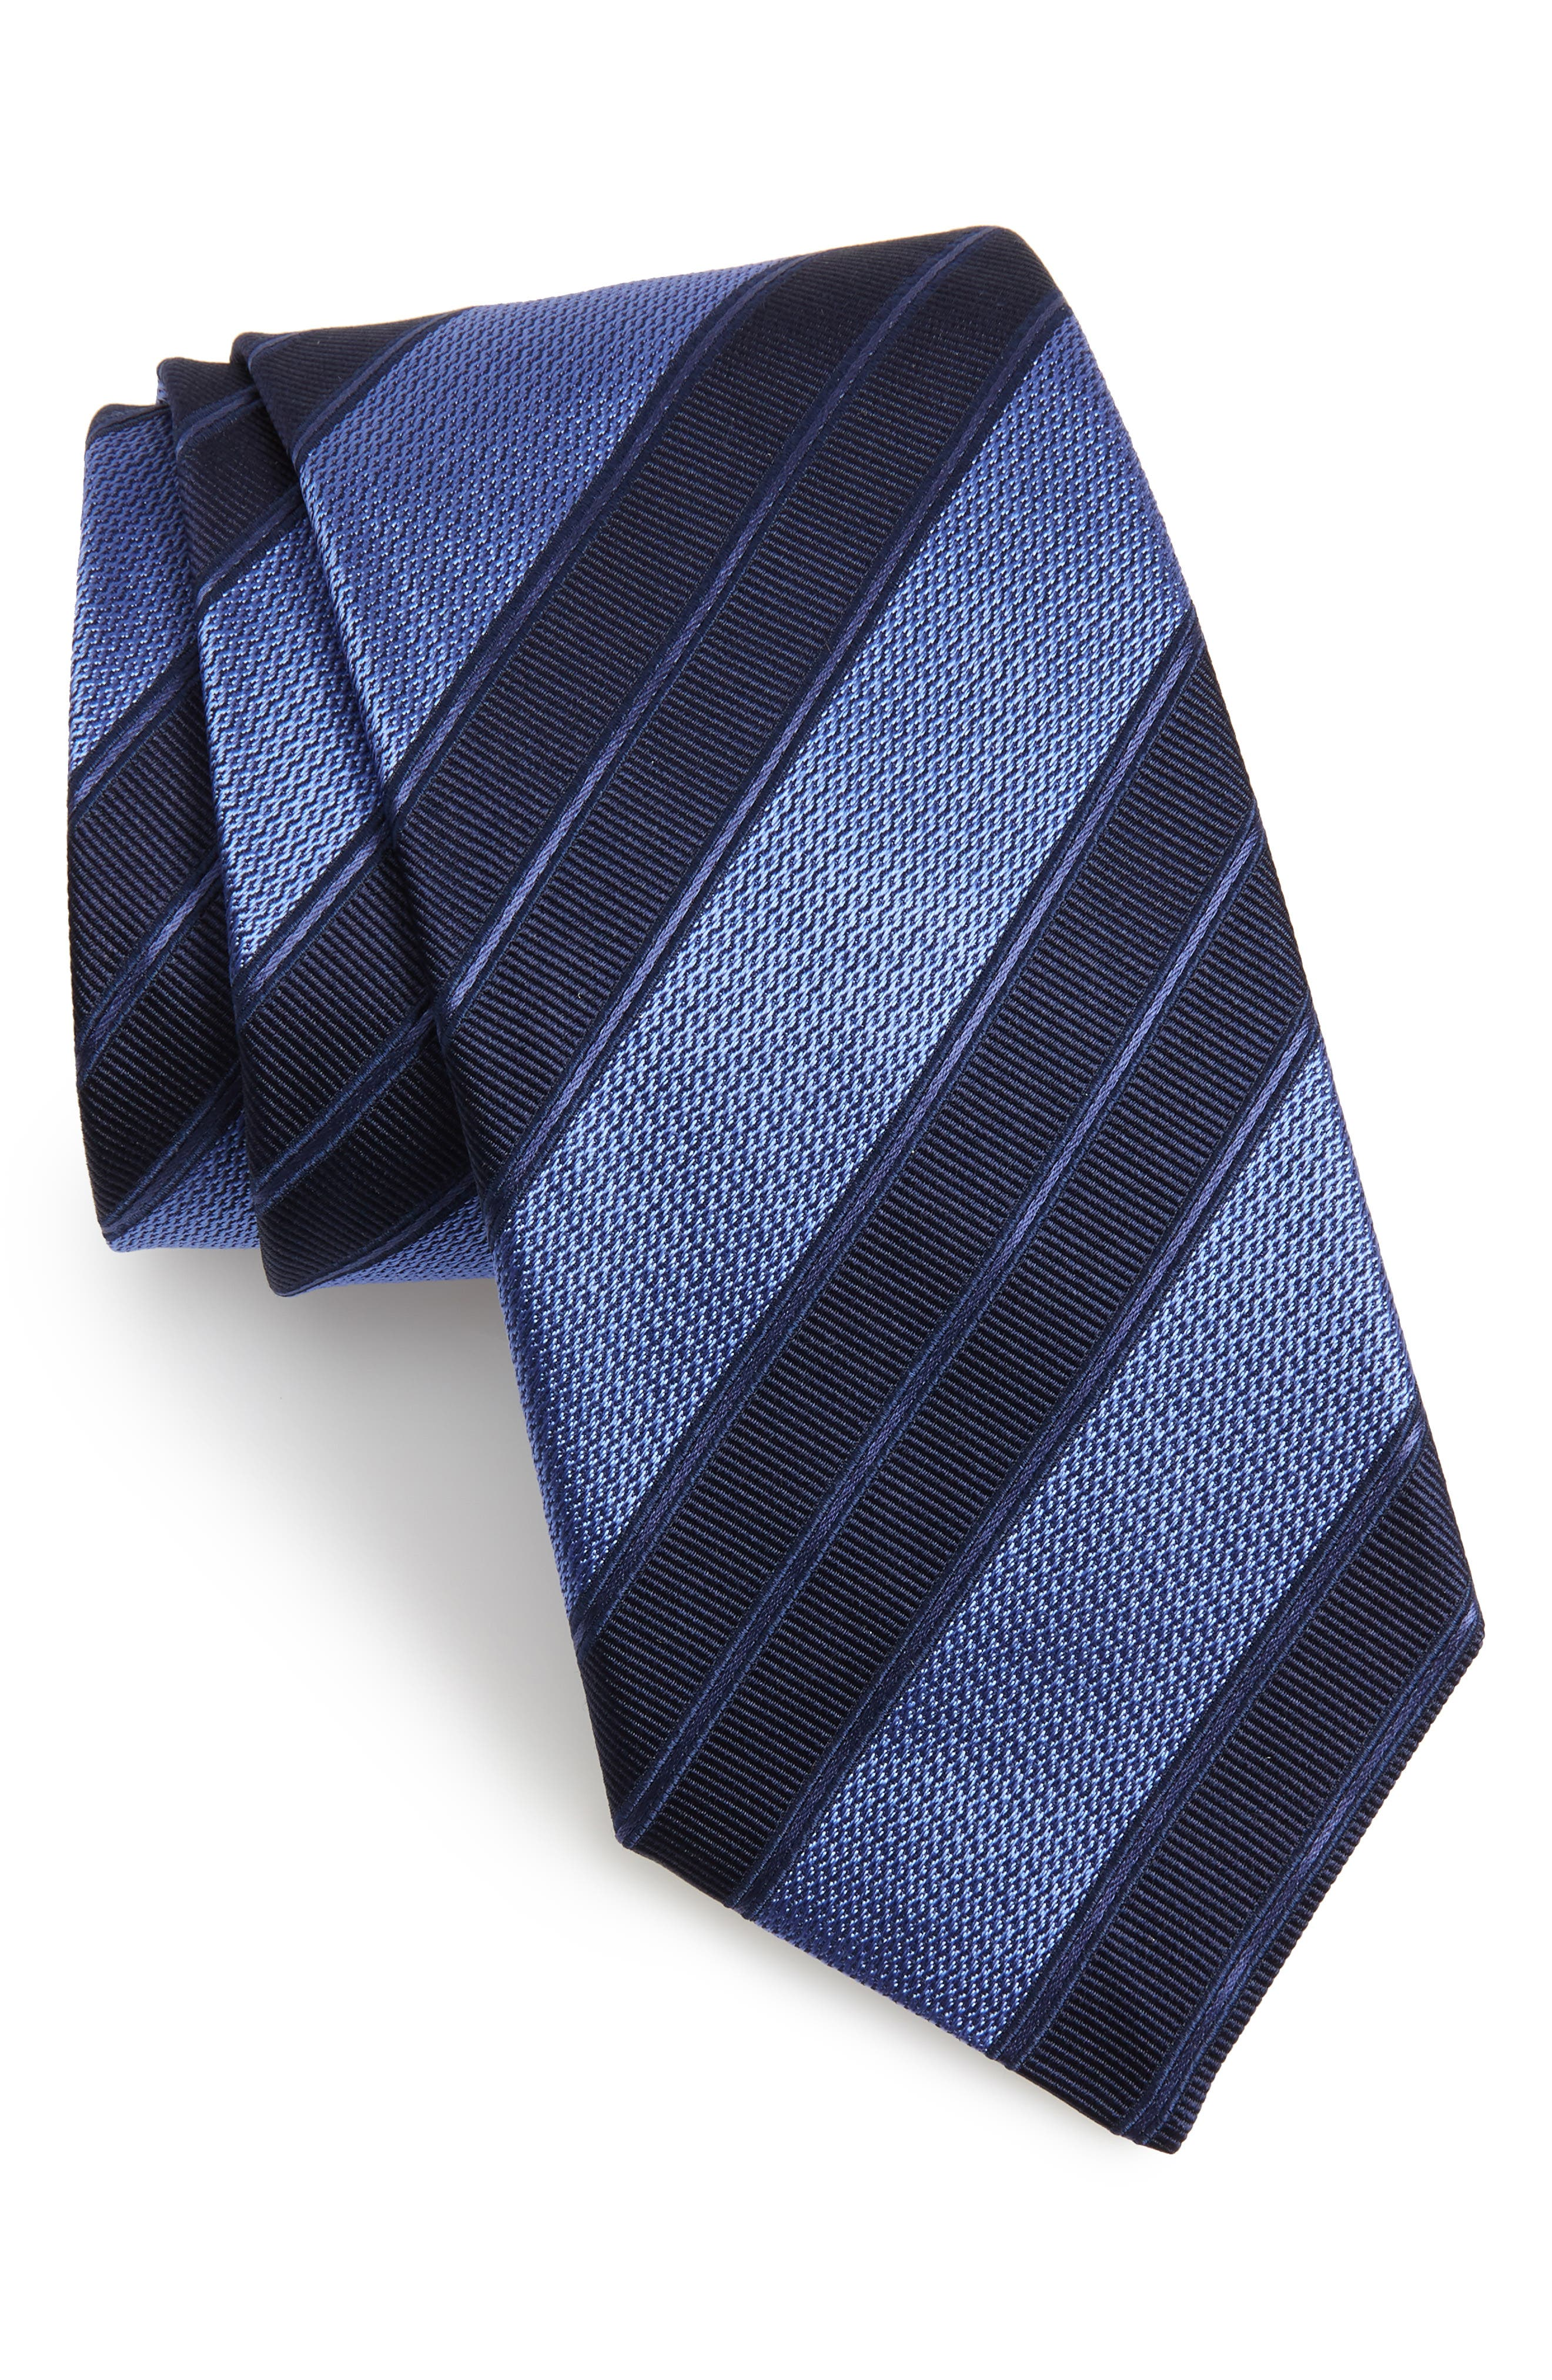 Stripe Silk Tie,                             Main thumbnail 1, color,                             410